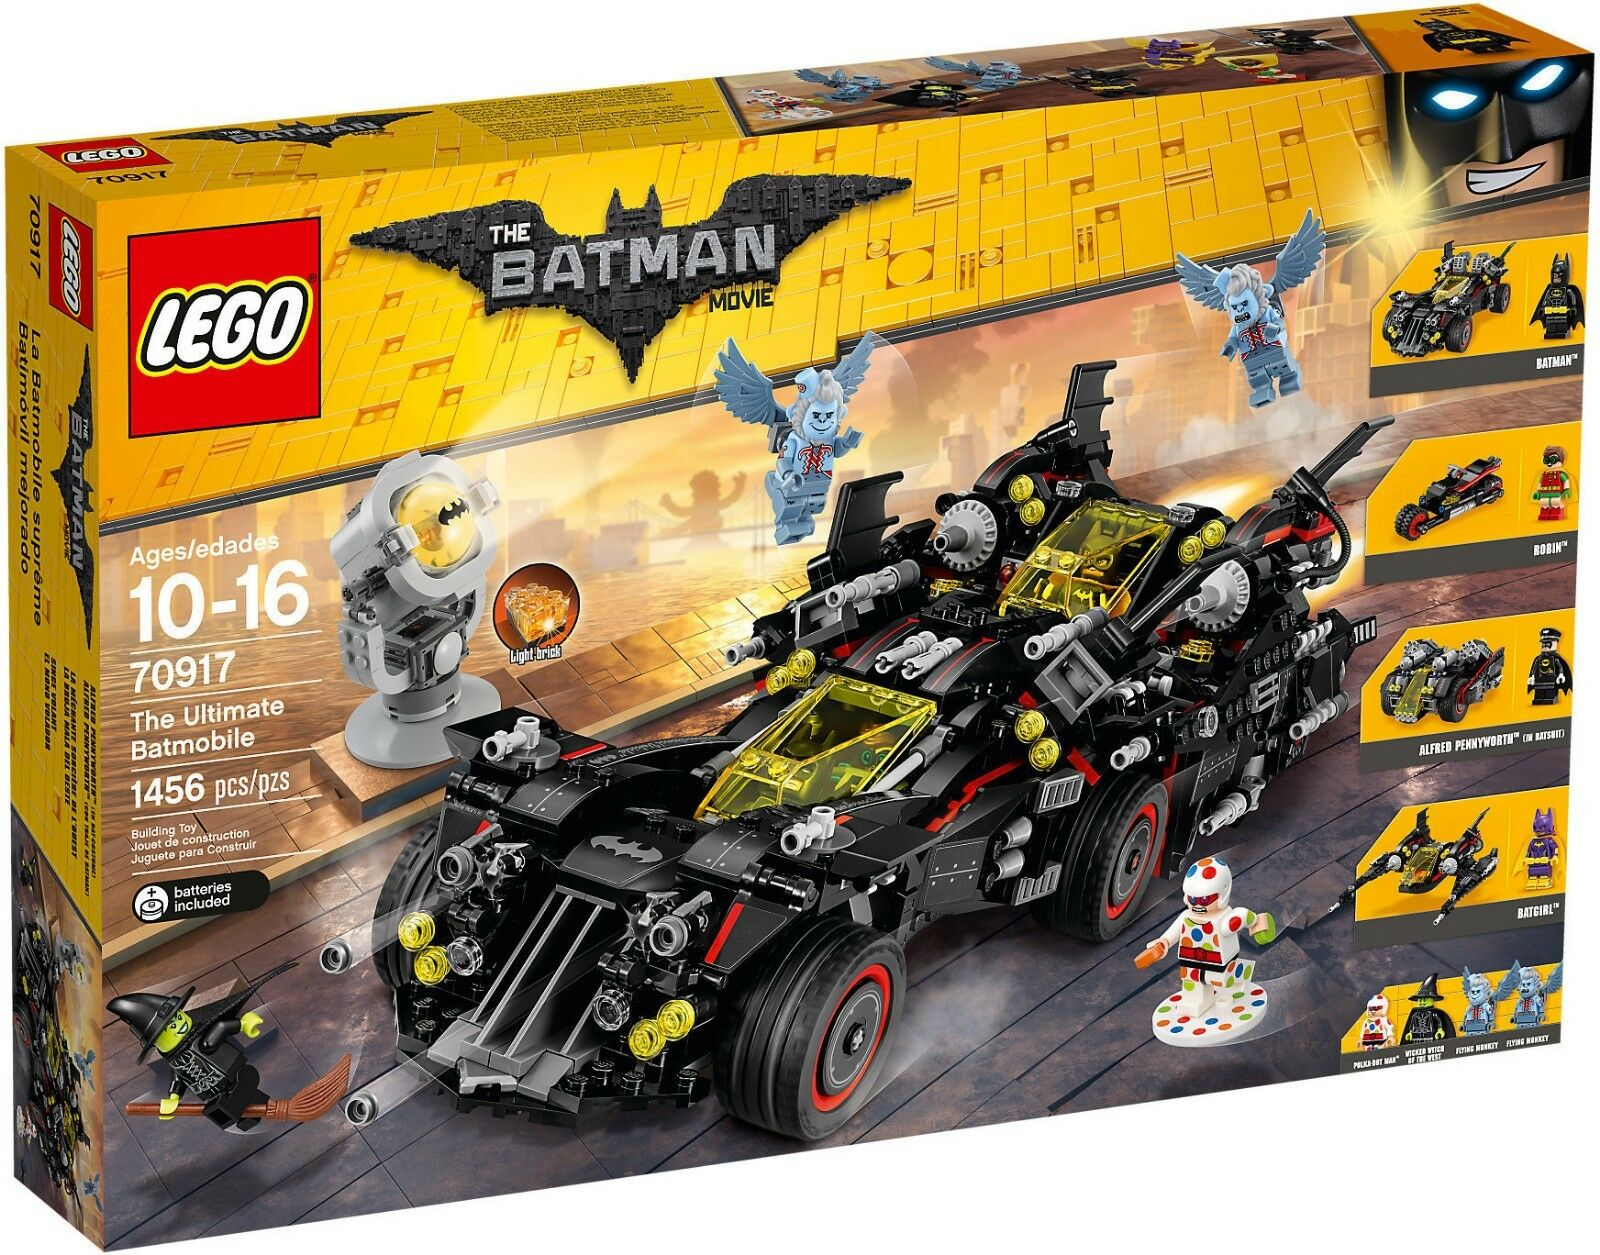 LEGO THE BATMAN MOVIE SUPER HEROES BATMOBILE 70917